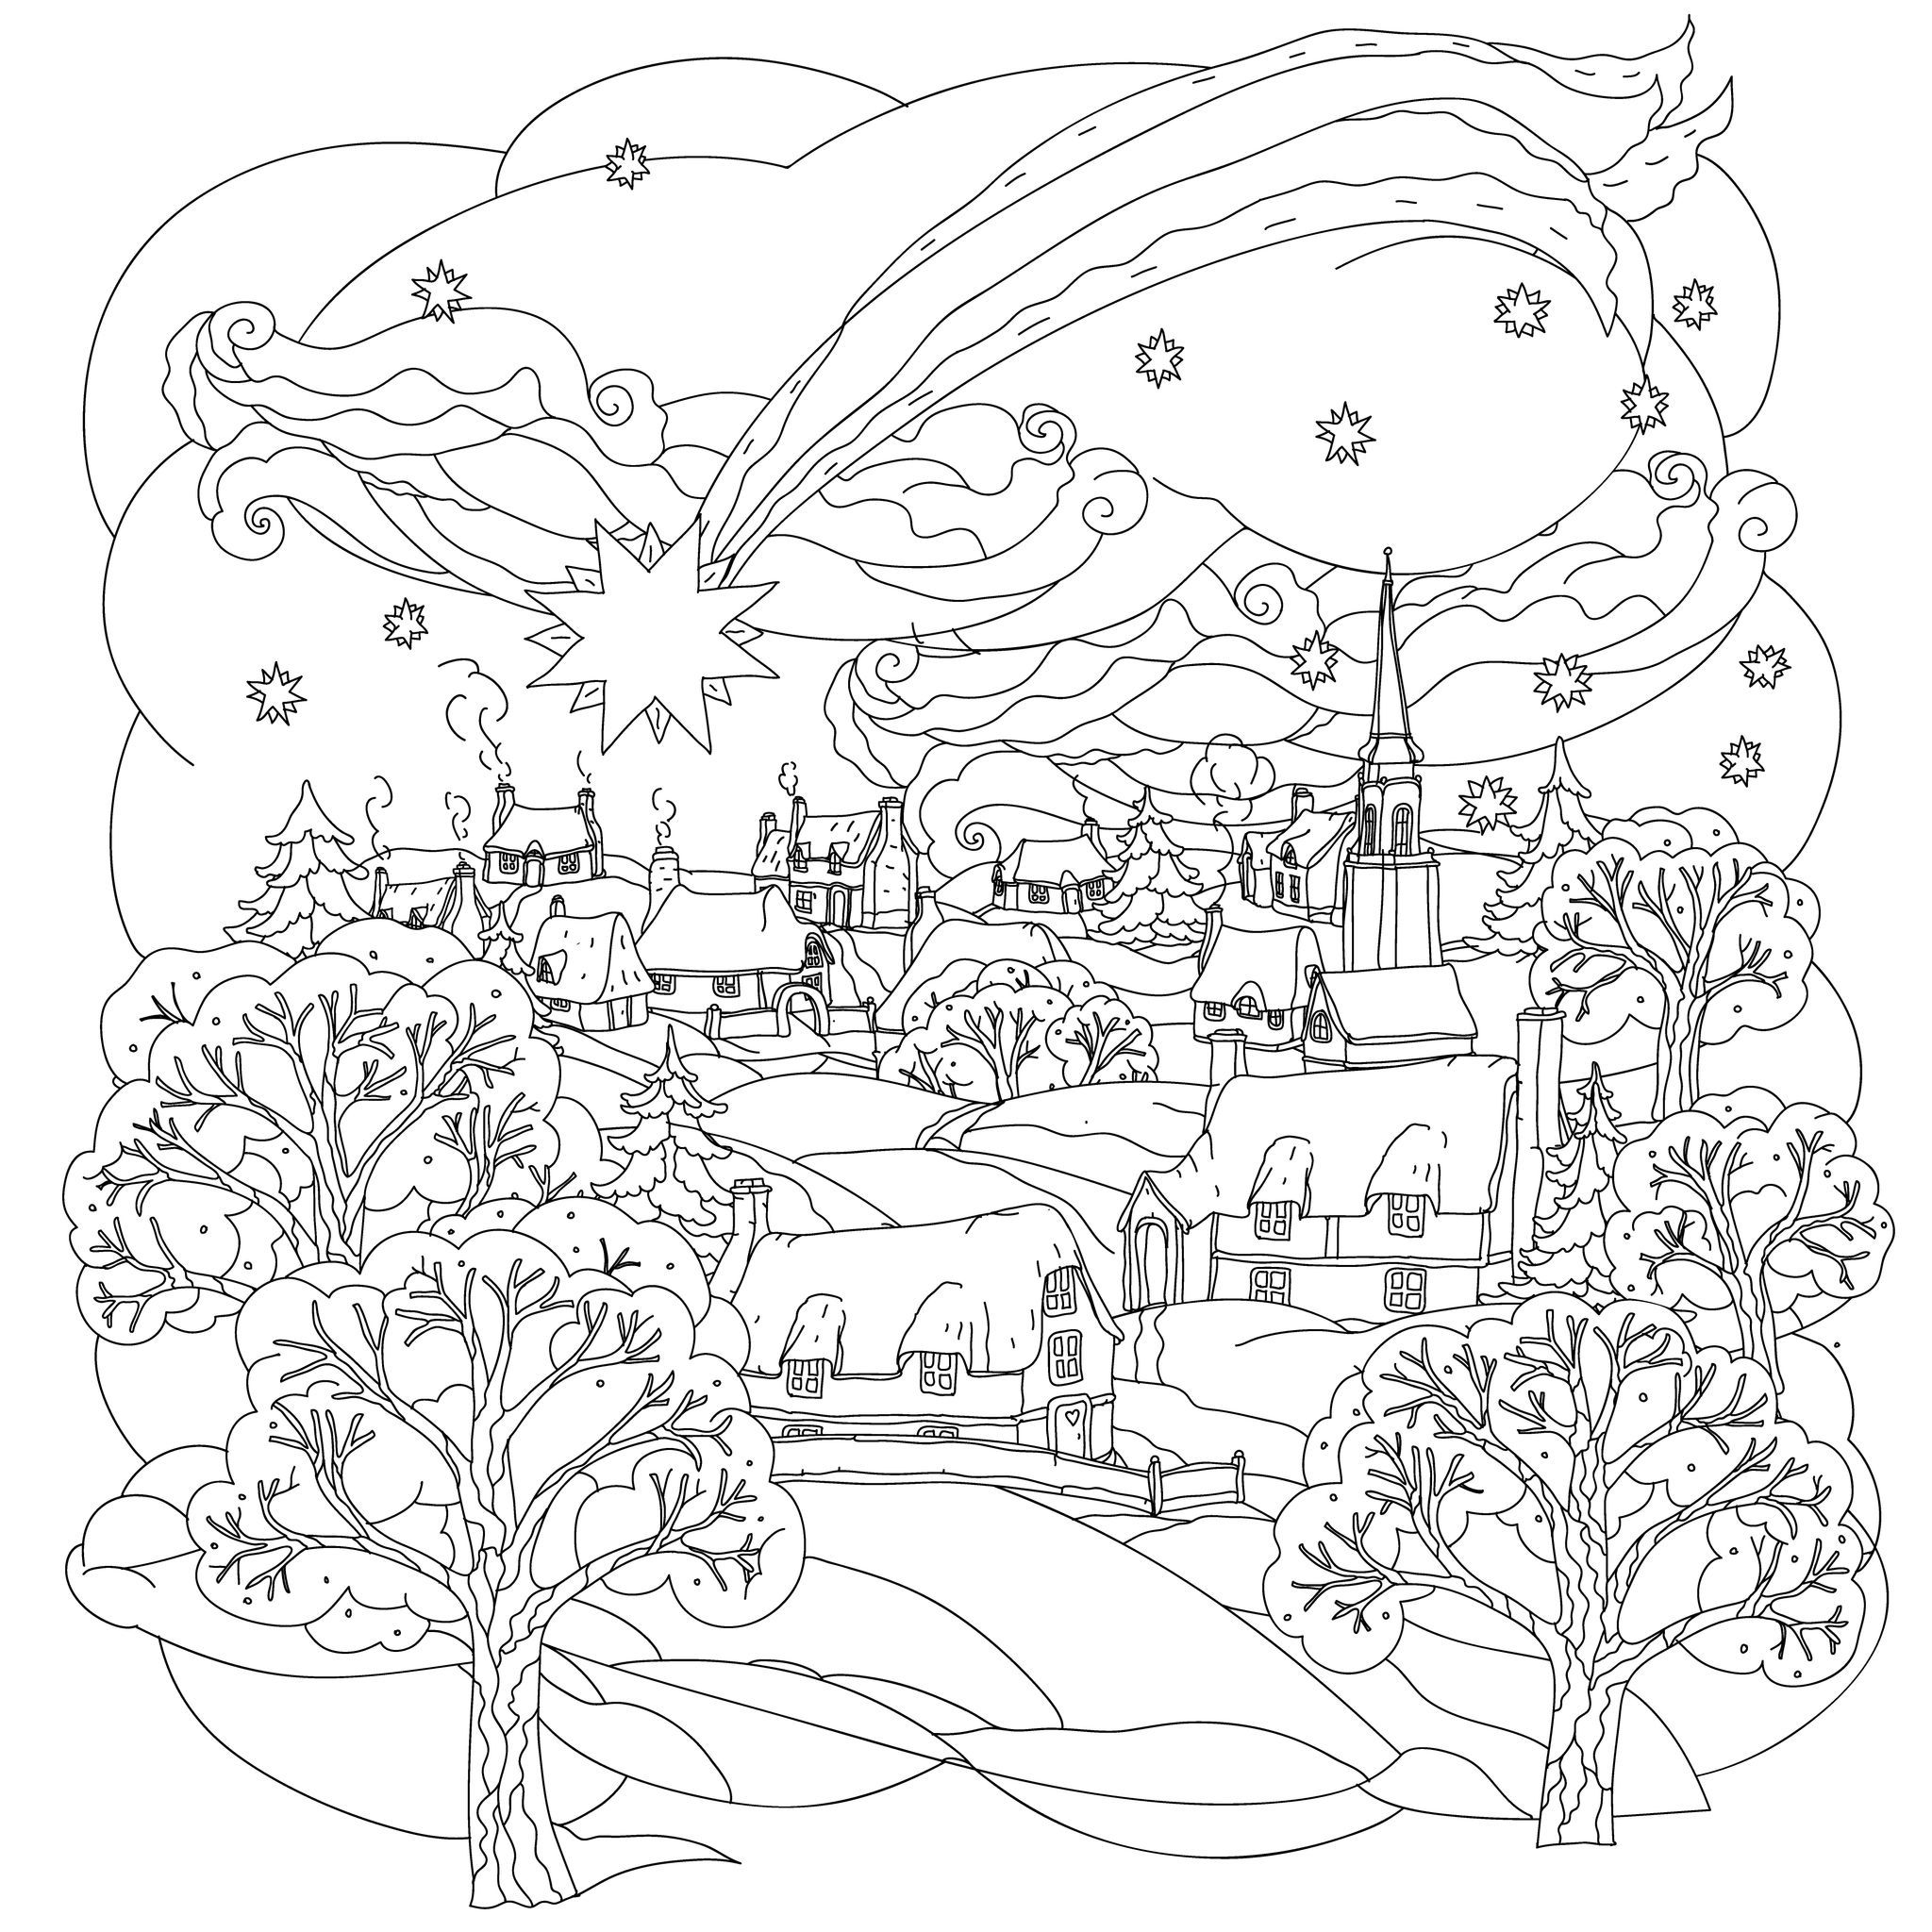 Pinterest christmas adult coloring pages - Christmas Star Flies Over Winter Village A Beautiful And Simple Xmas Coloring Page